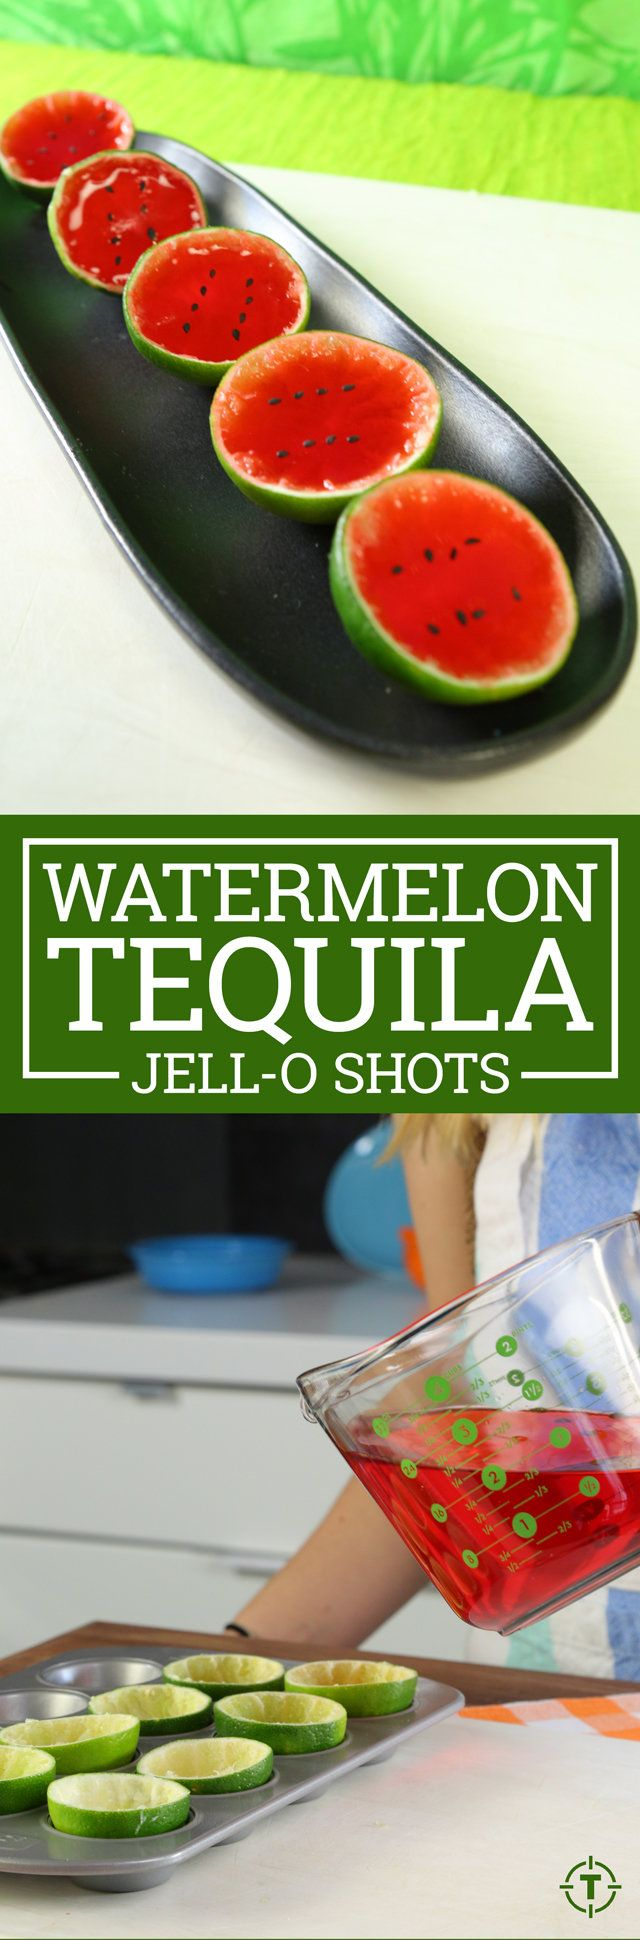 Best 25 watermelon tequila ideas on pinterest amazing for Best tequila shot recipes